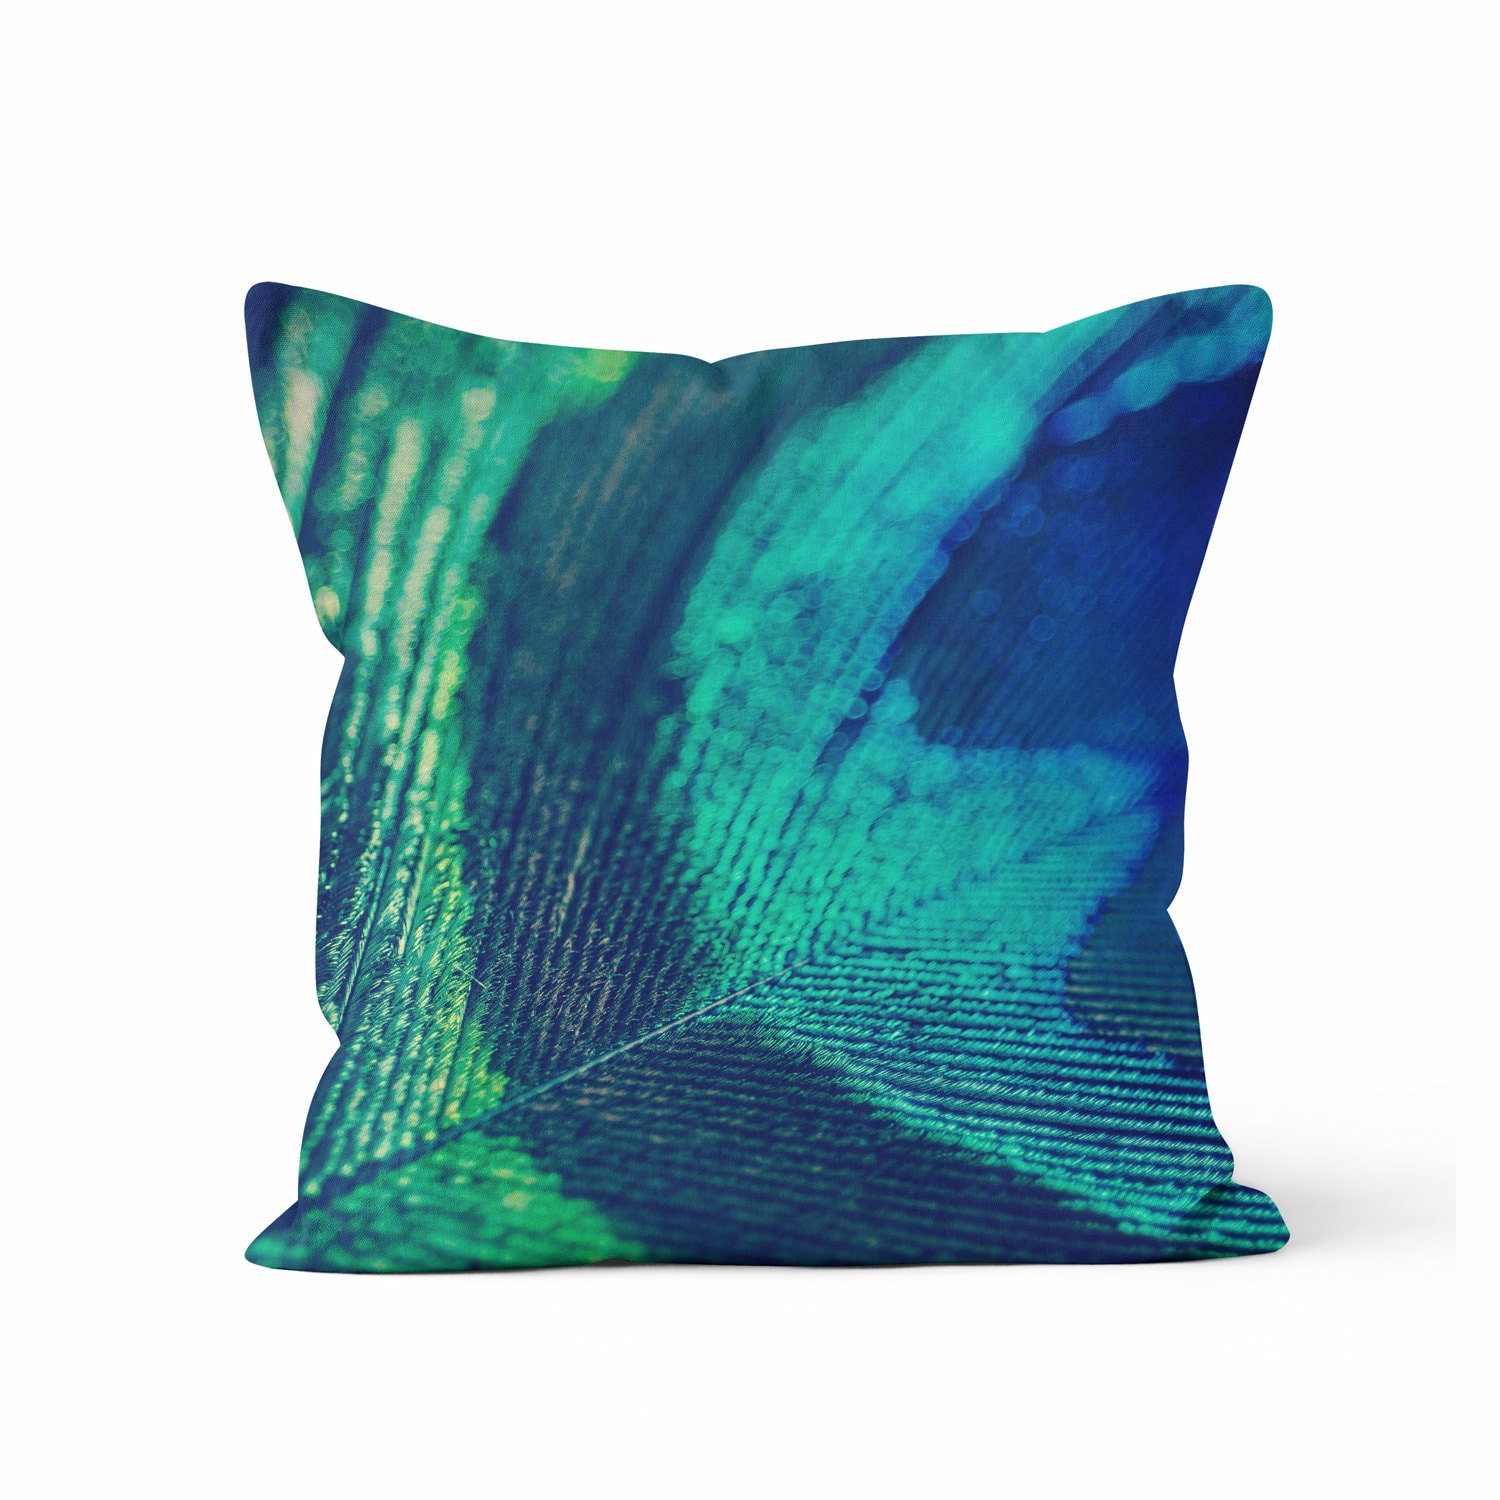 Peacock Blue Throw Pillow : Blue Peacock Feather Decorative Throw Pillow Case Peacock